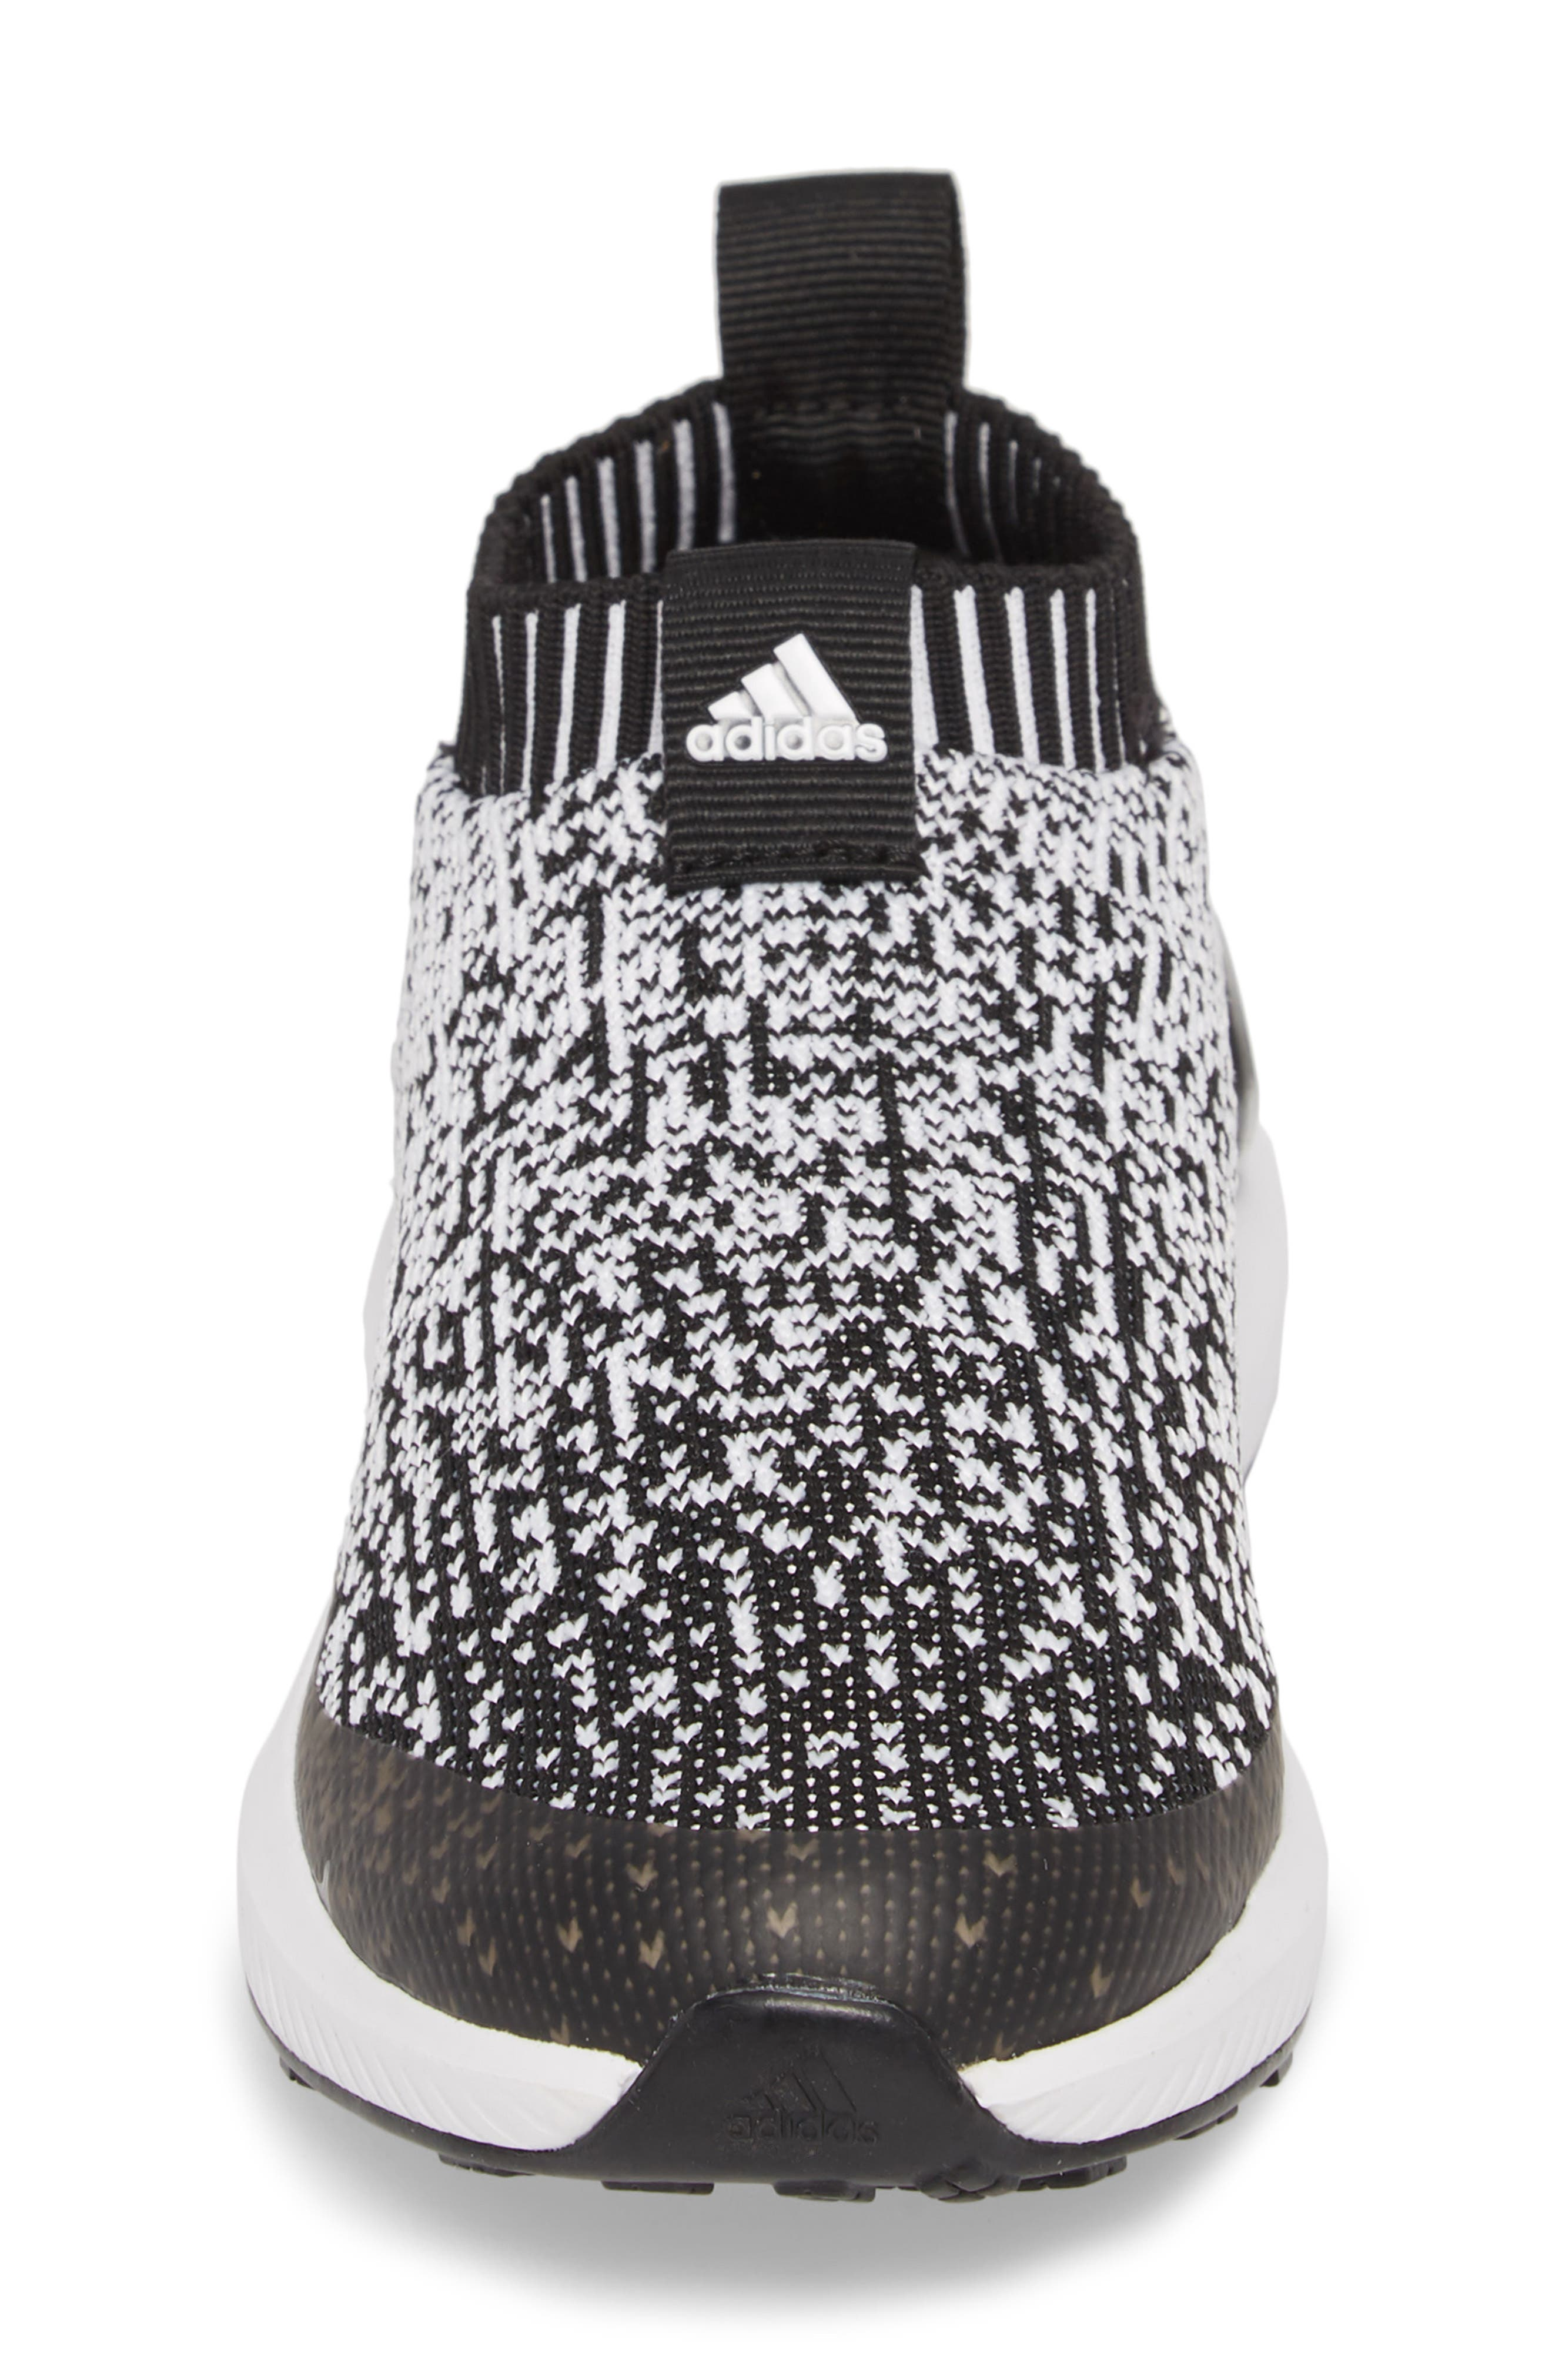 RapidaRun Laceless Knit Sneaker,                             Alternate thumbnail 6, color,                             Black/ White/ Black